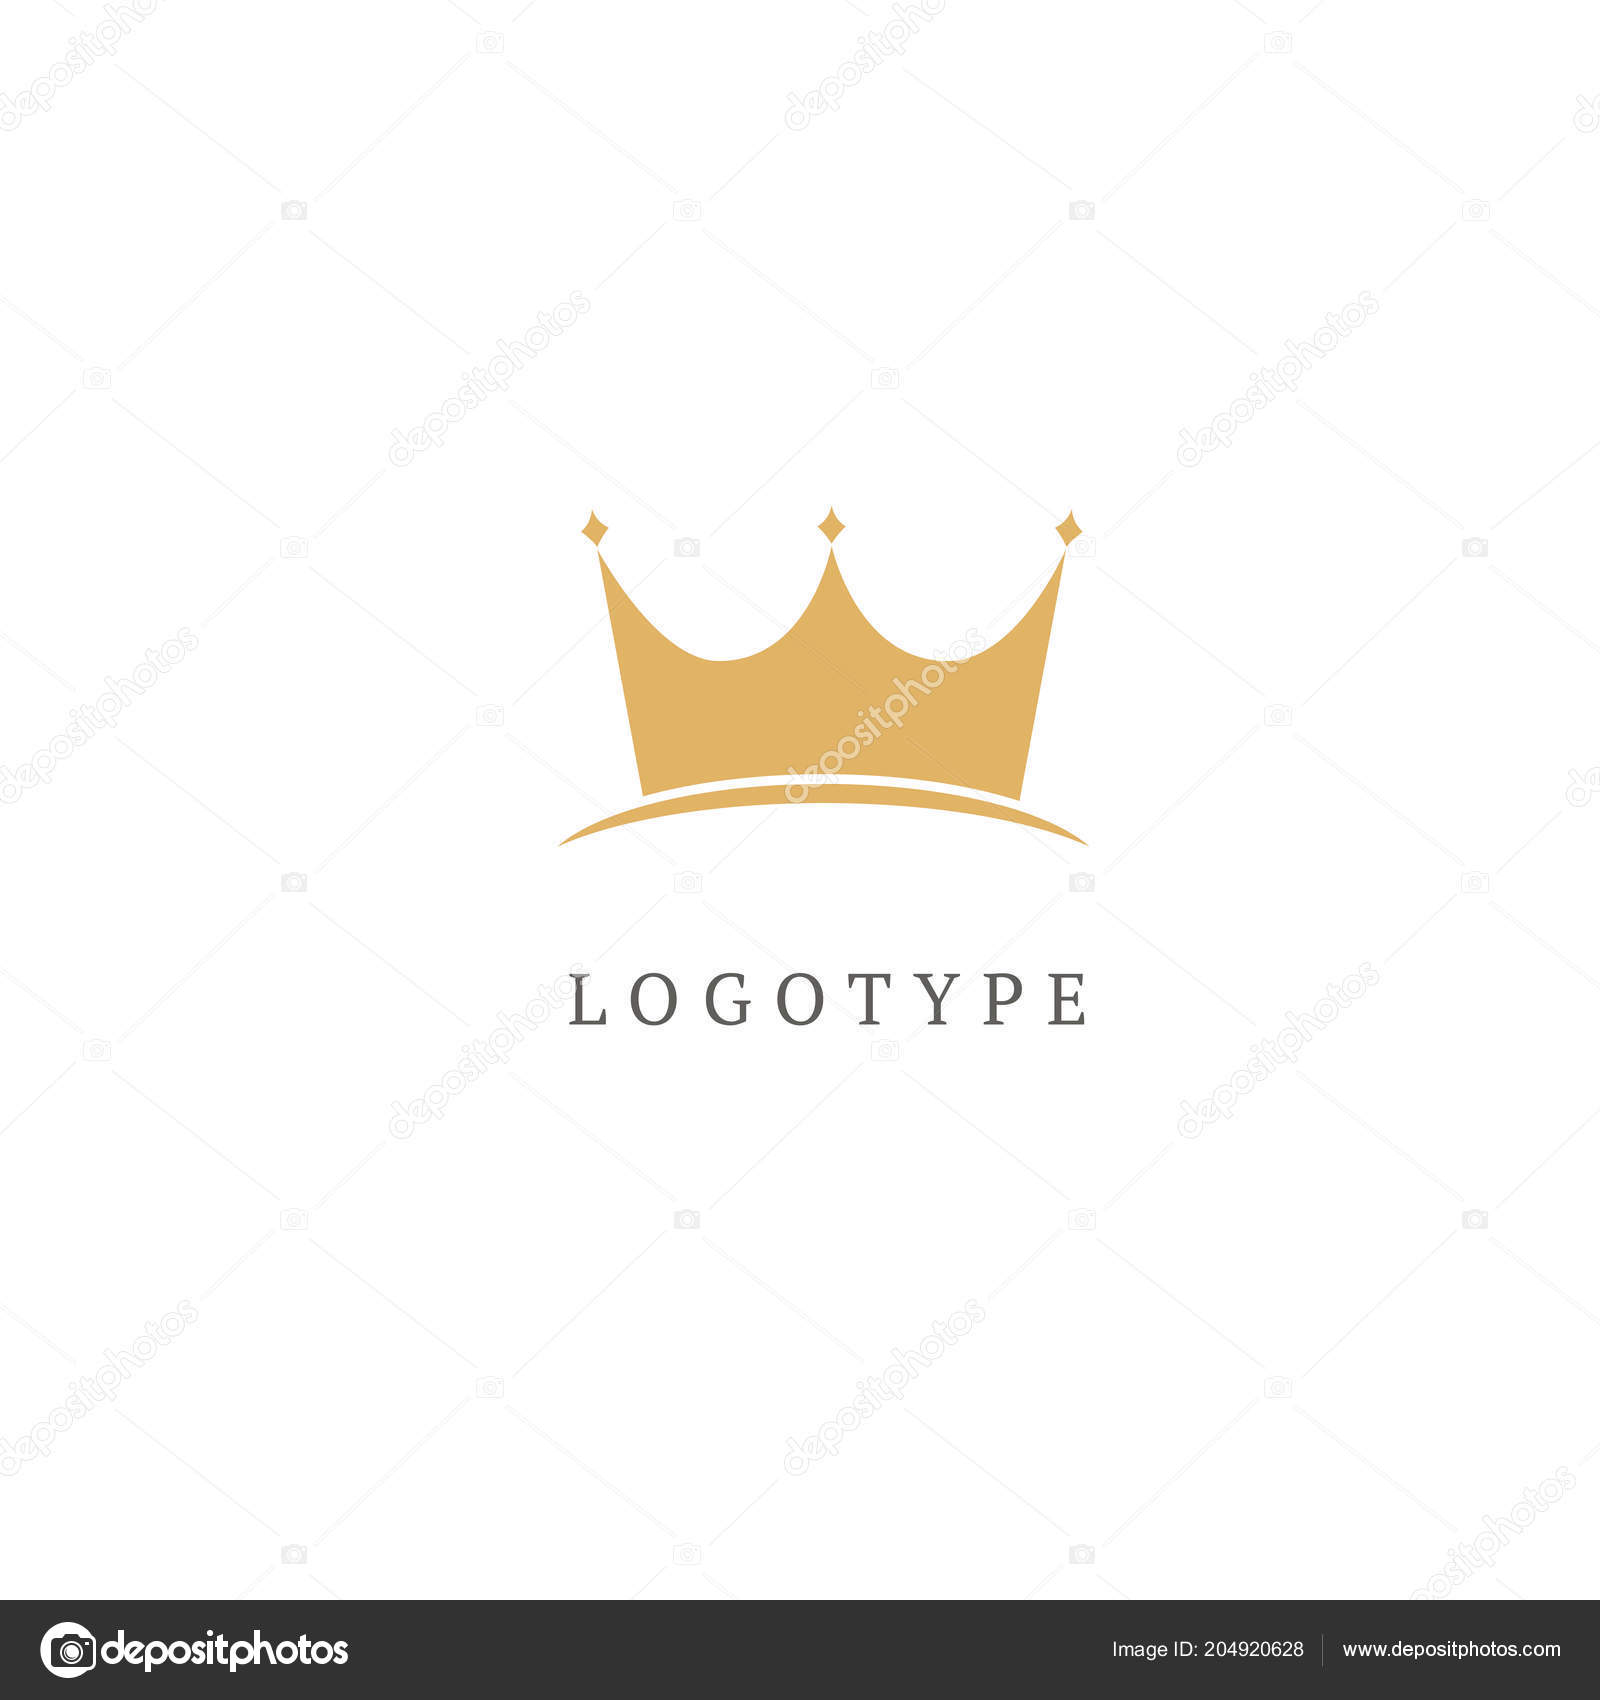 Illustration Design Elegant Premium Royal Logotype Queen King Crown